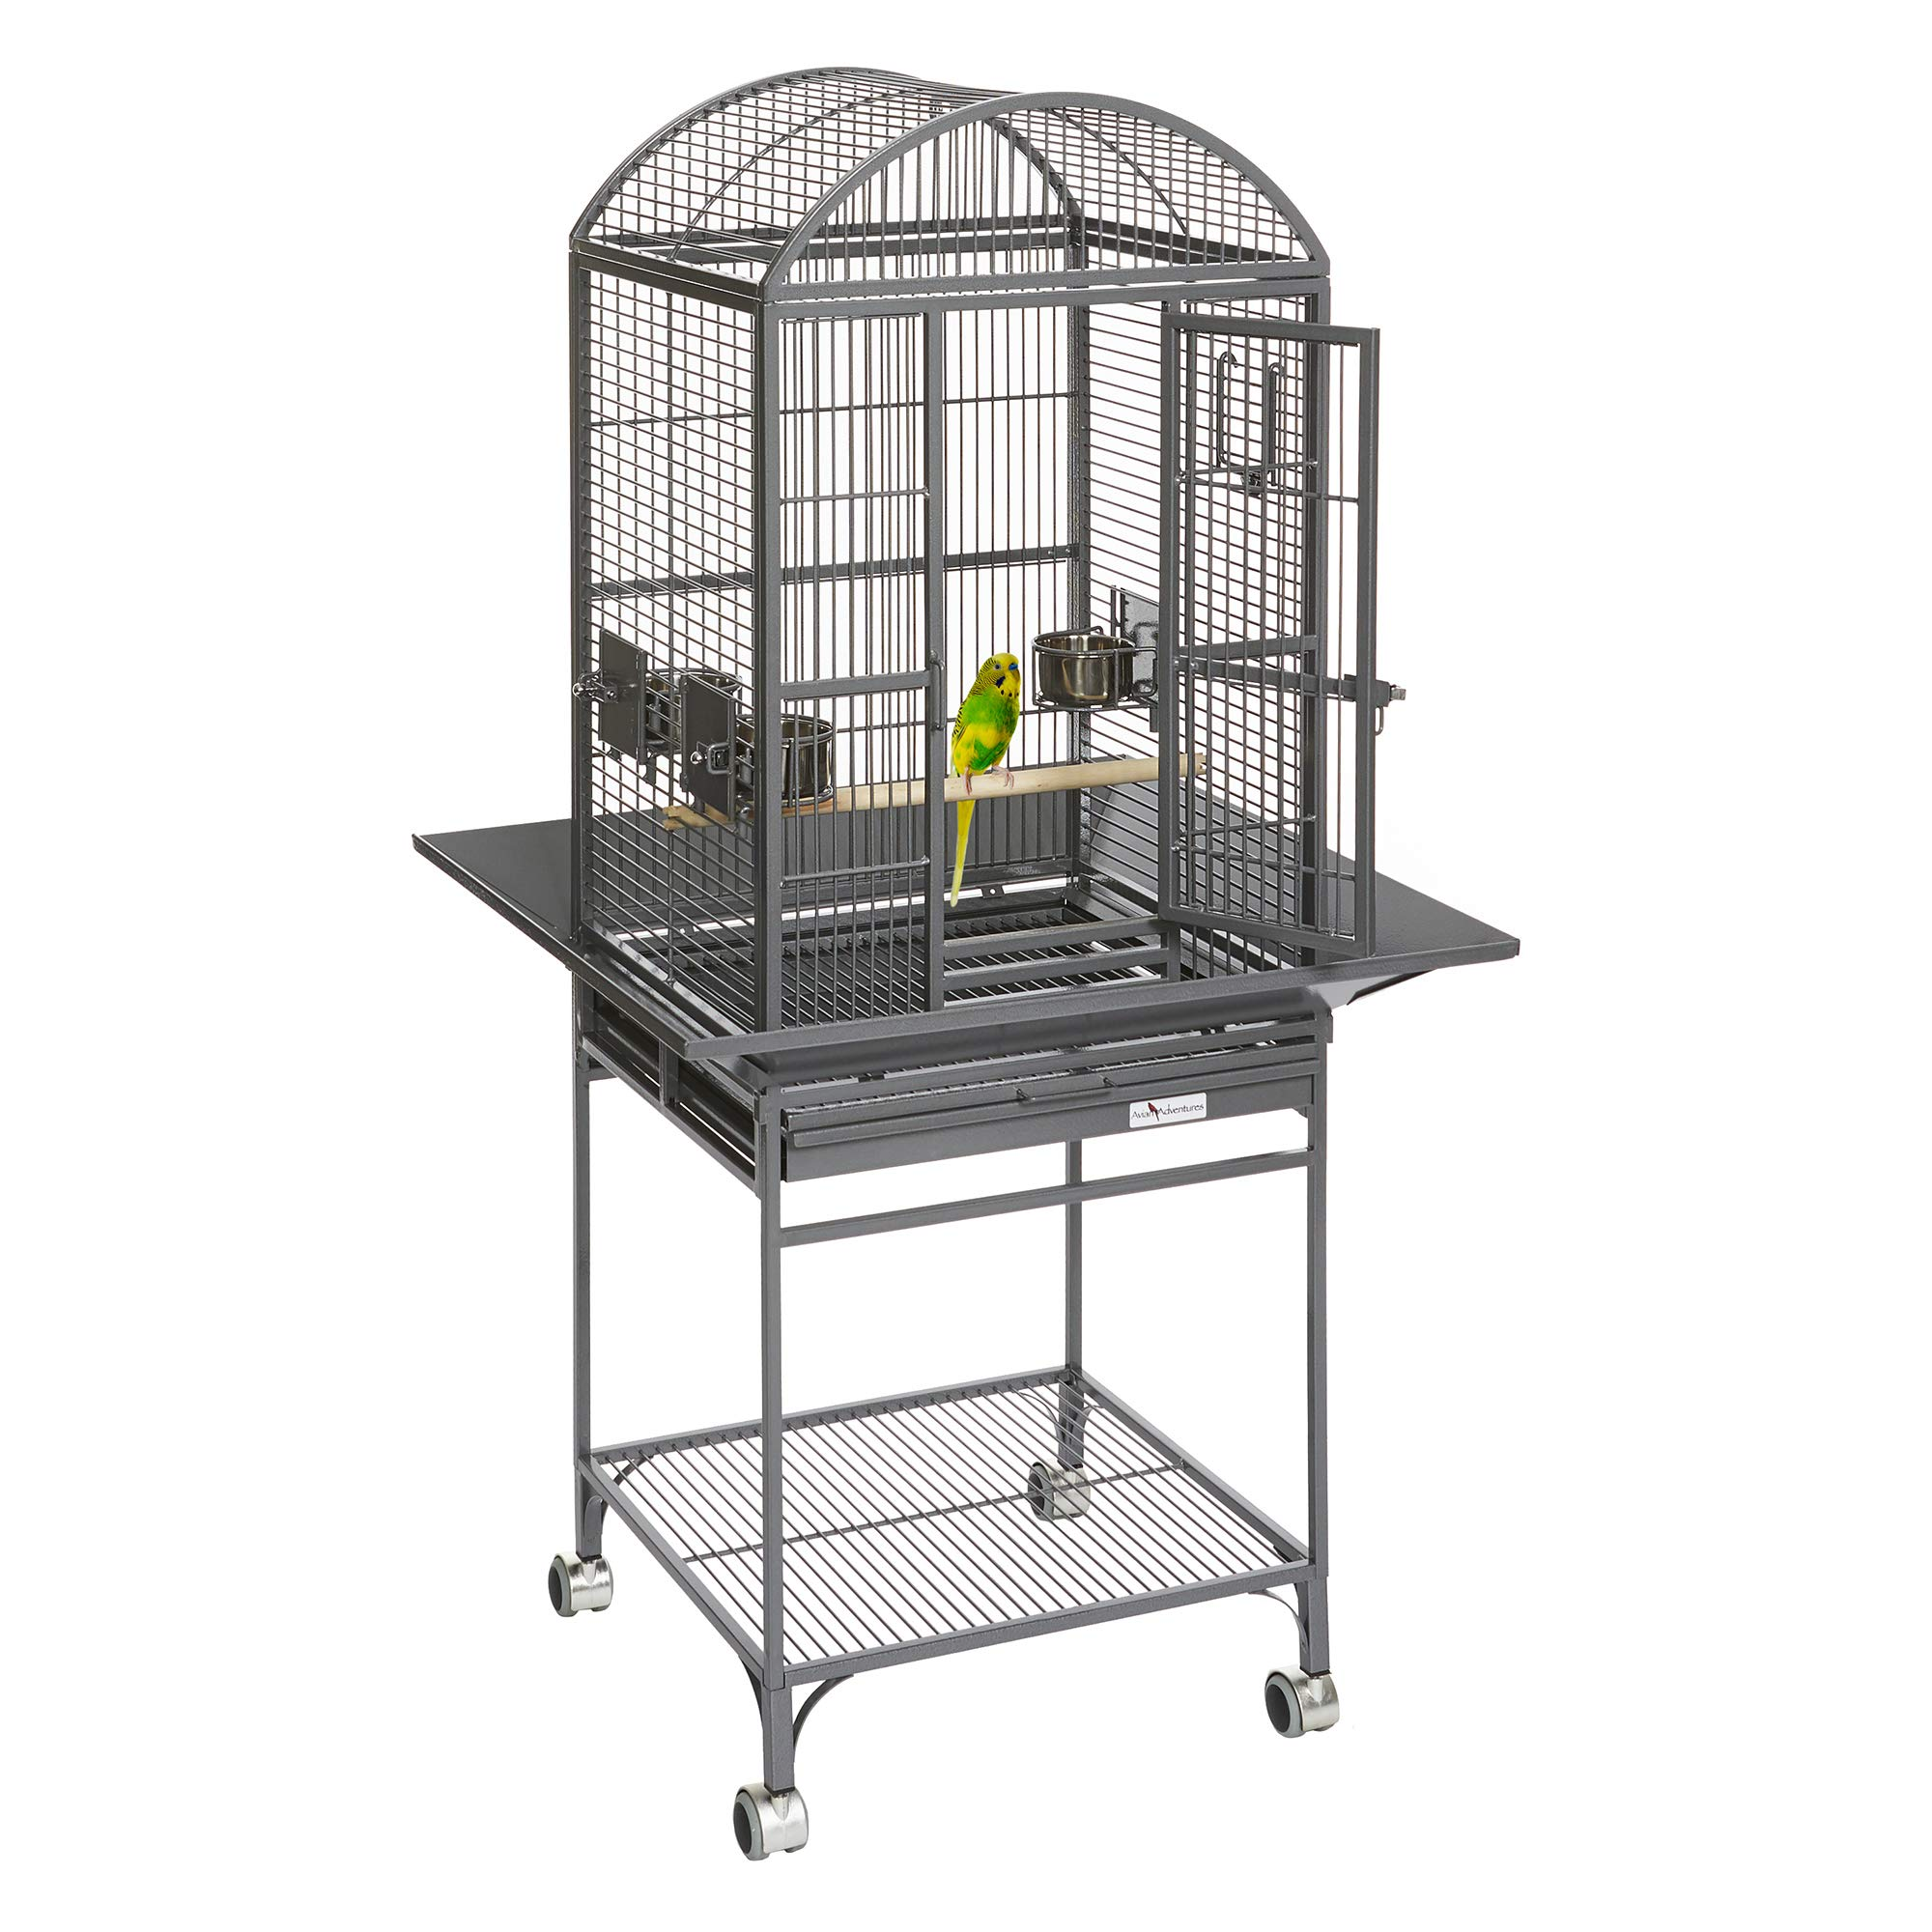 MidWest Homes for Pets Nina Bird Cage-Platinum Dome Top by MidWest Homes for Pets